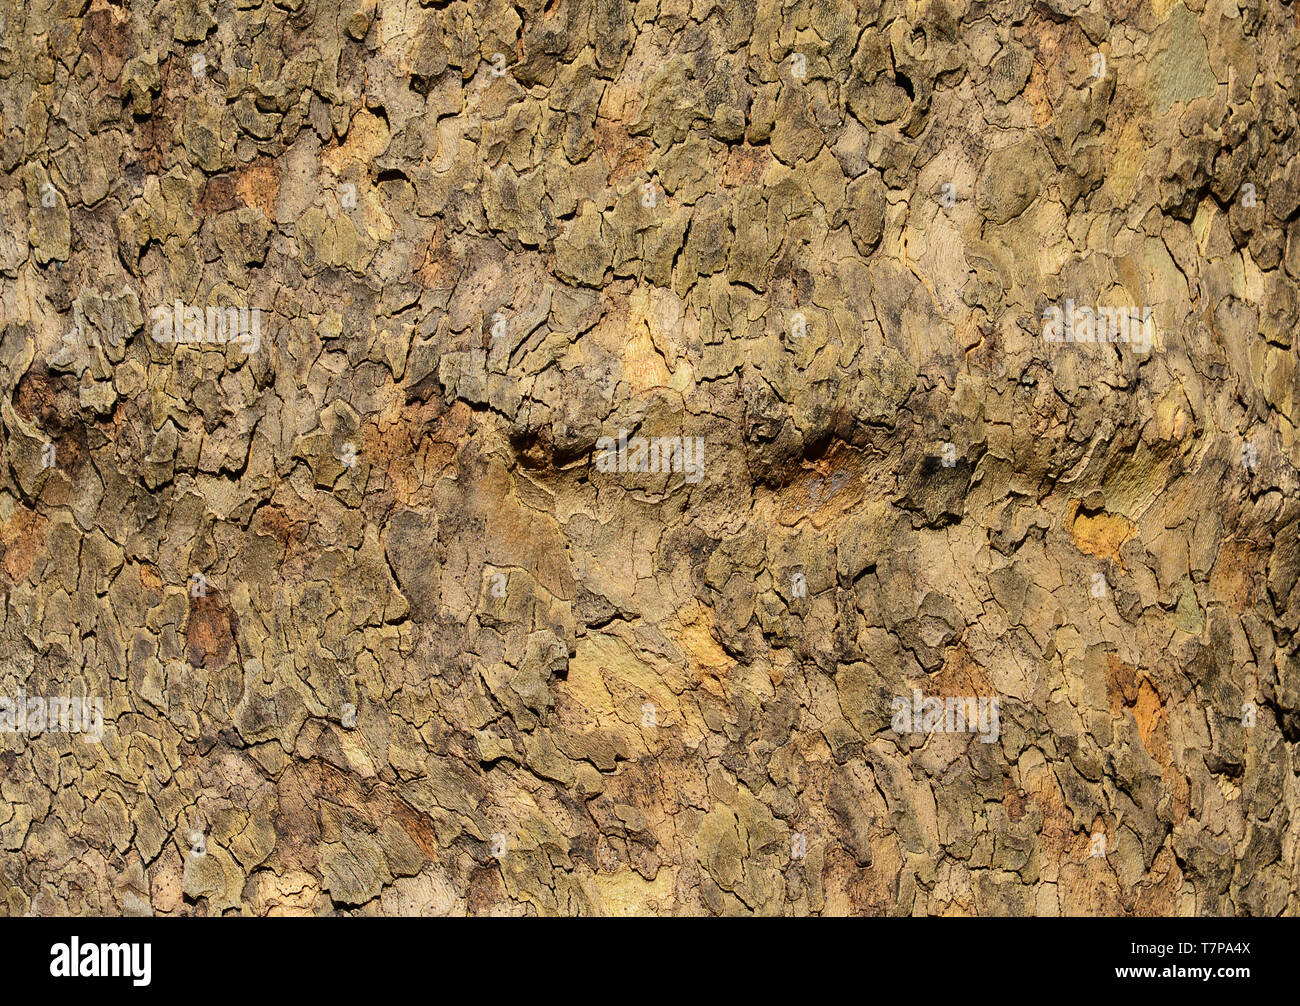 Trident Maple bark rough surface as background - Stock Image